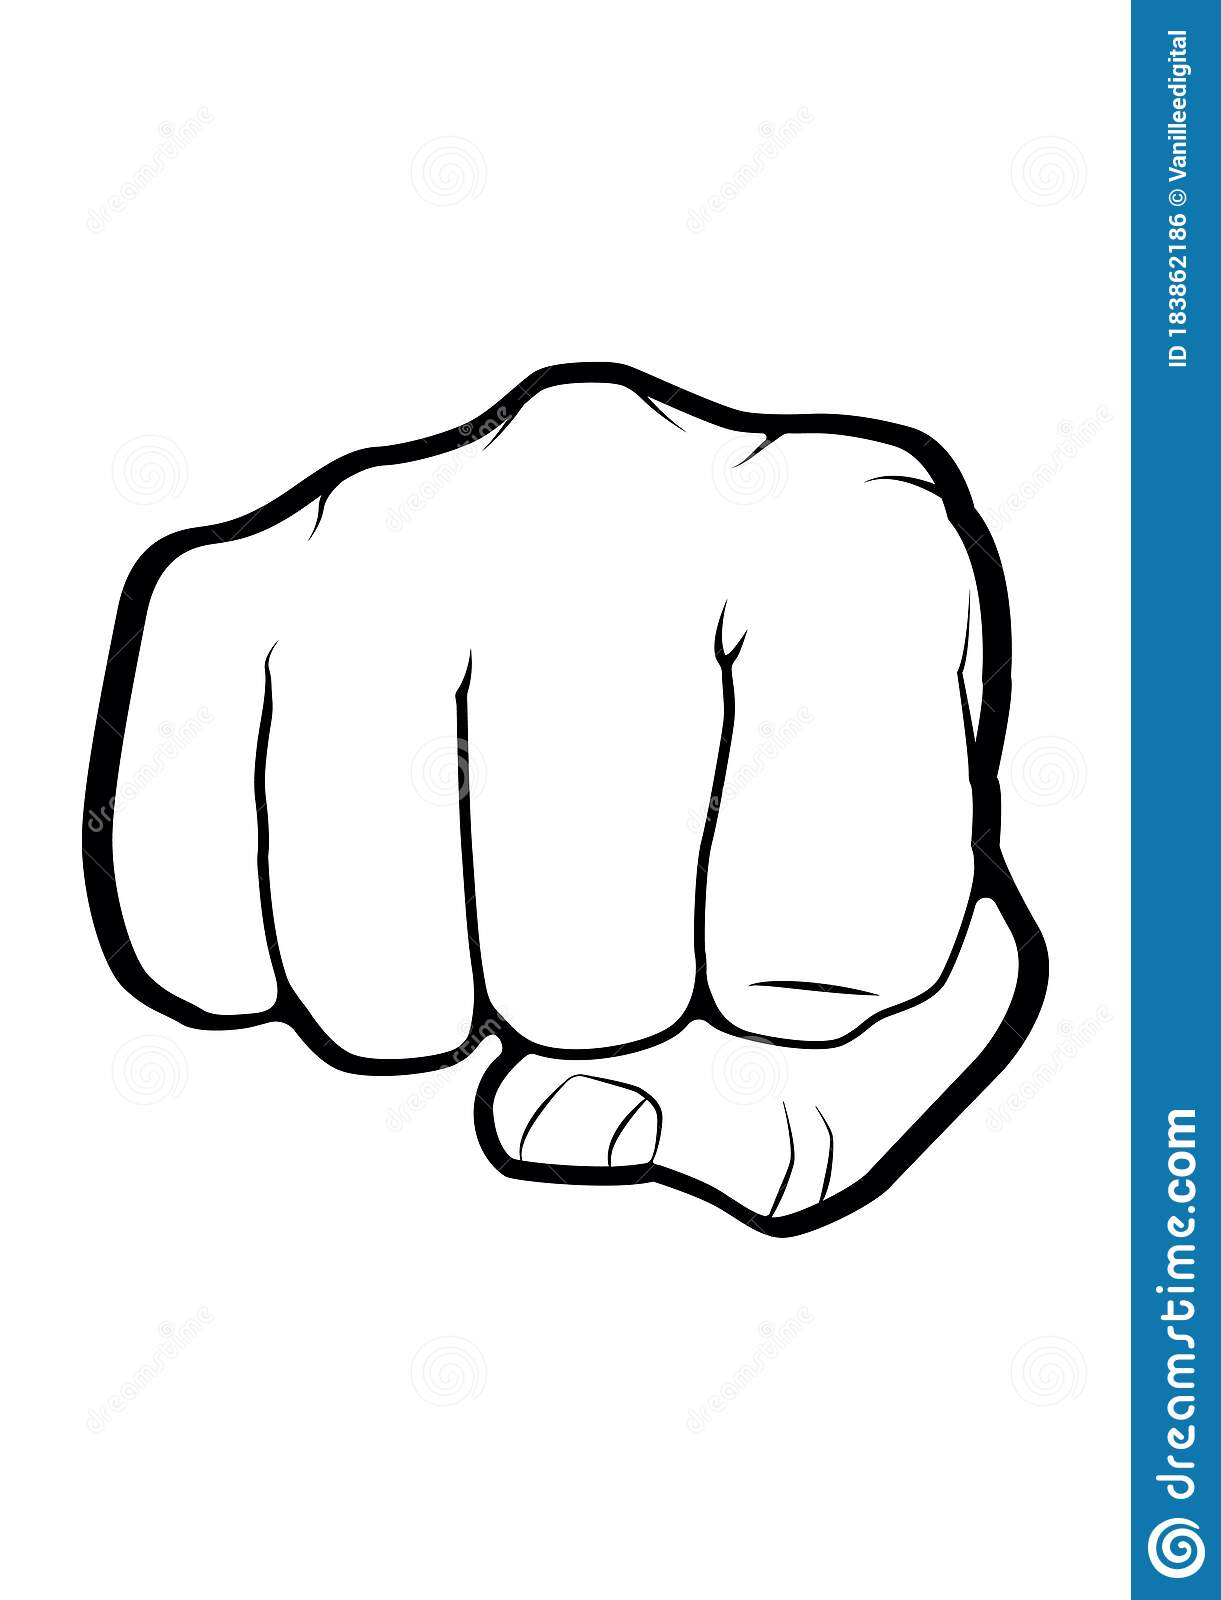 Fist Punch Front Hand Vector Illustration Drawing Stock Vector Illustration Of Fist White 183862186